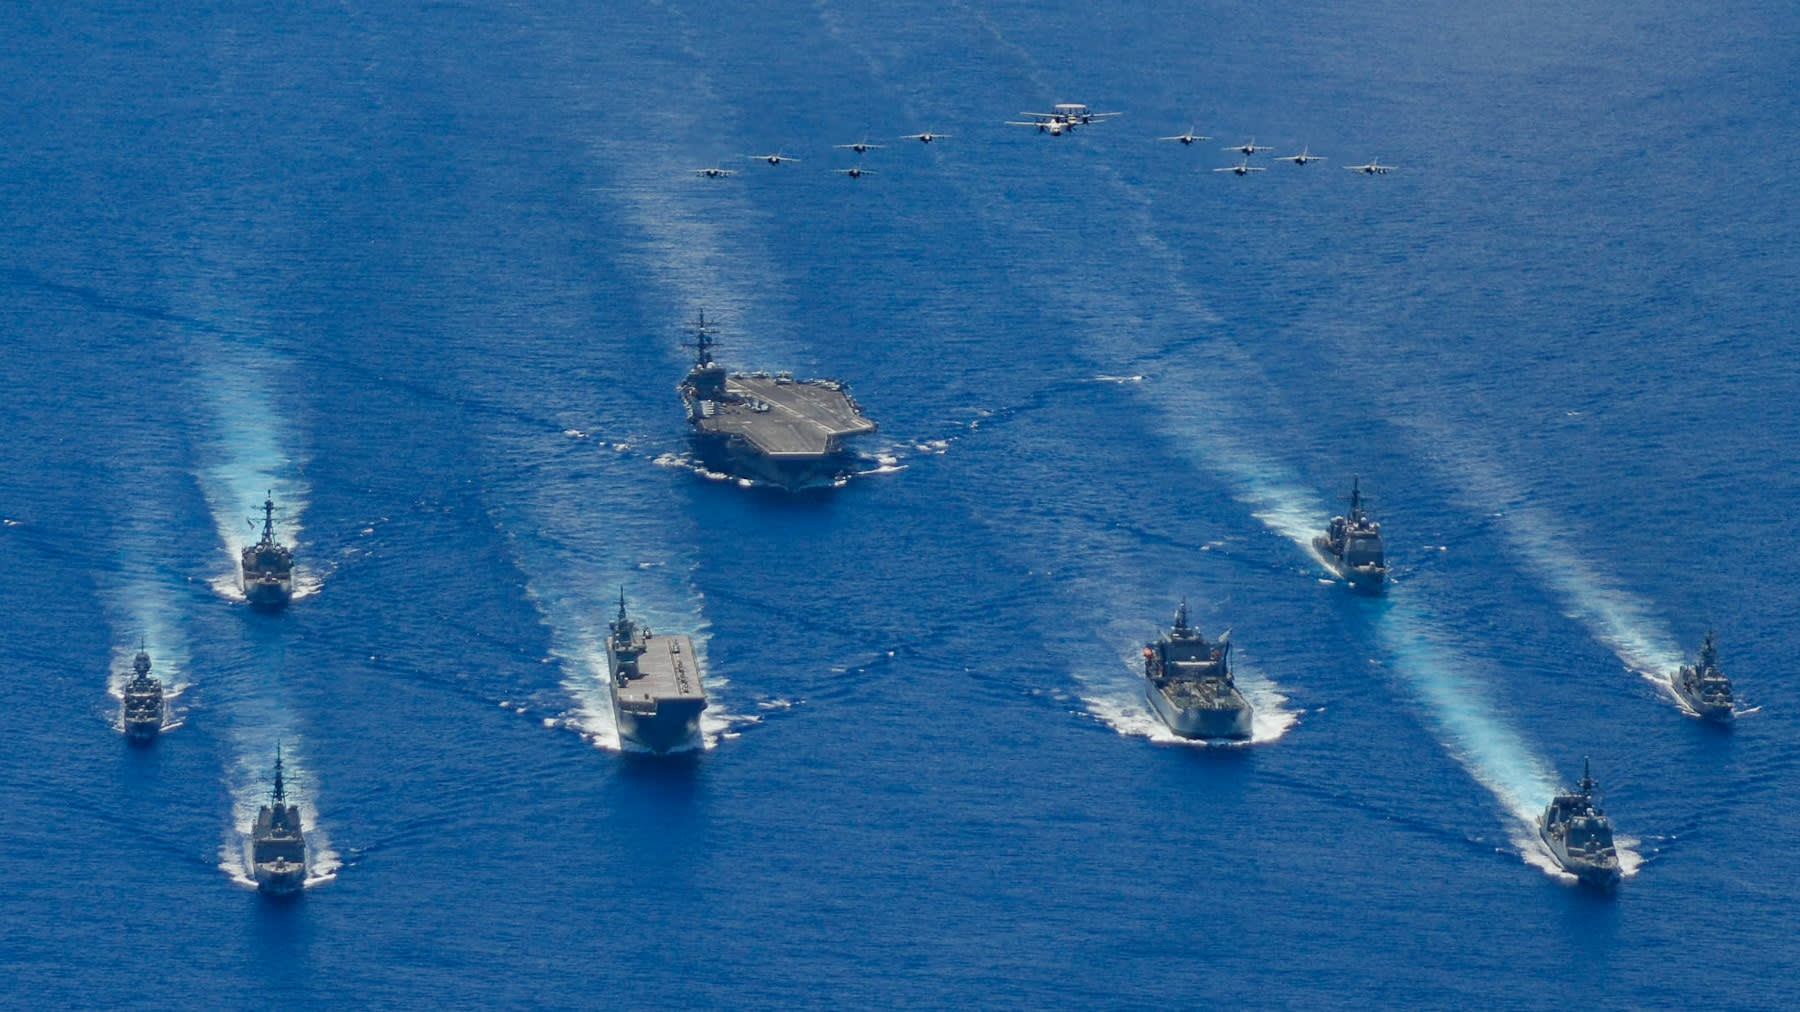 The ronald reagan carrier strike group and units from the japan maritime self-defense force and australian defense participate in trilateral exercises the philippine sea on july 21